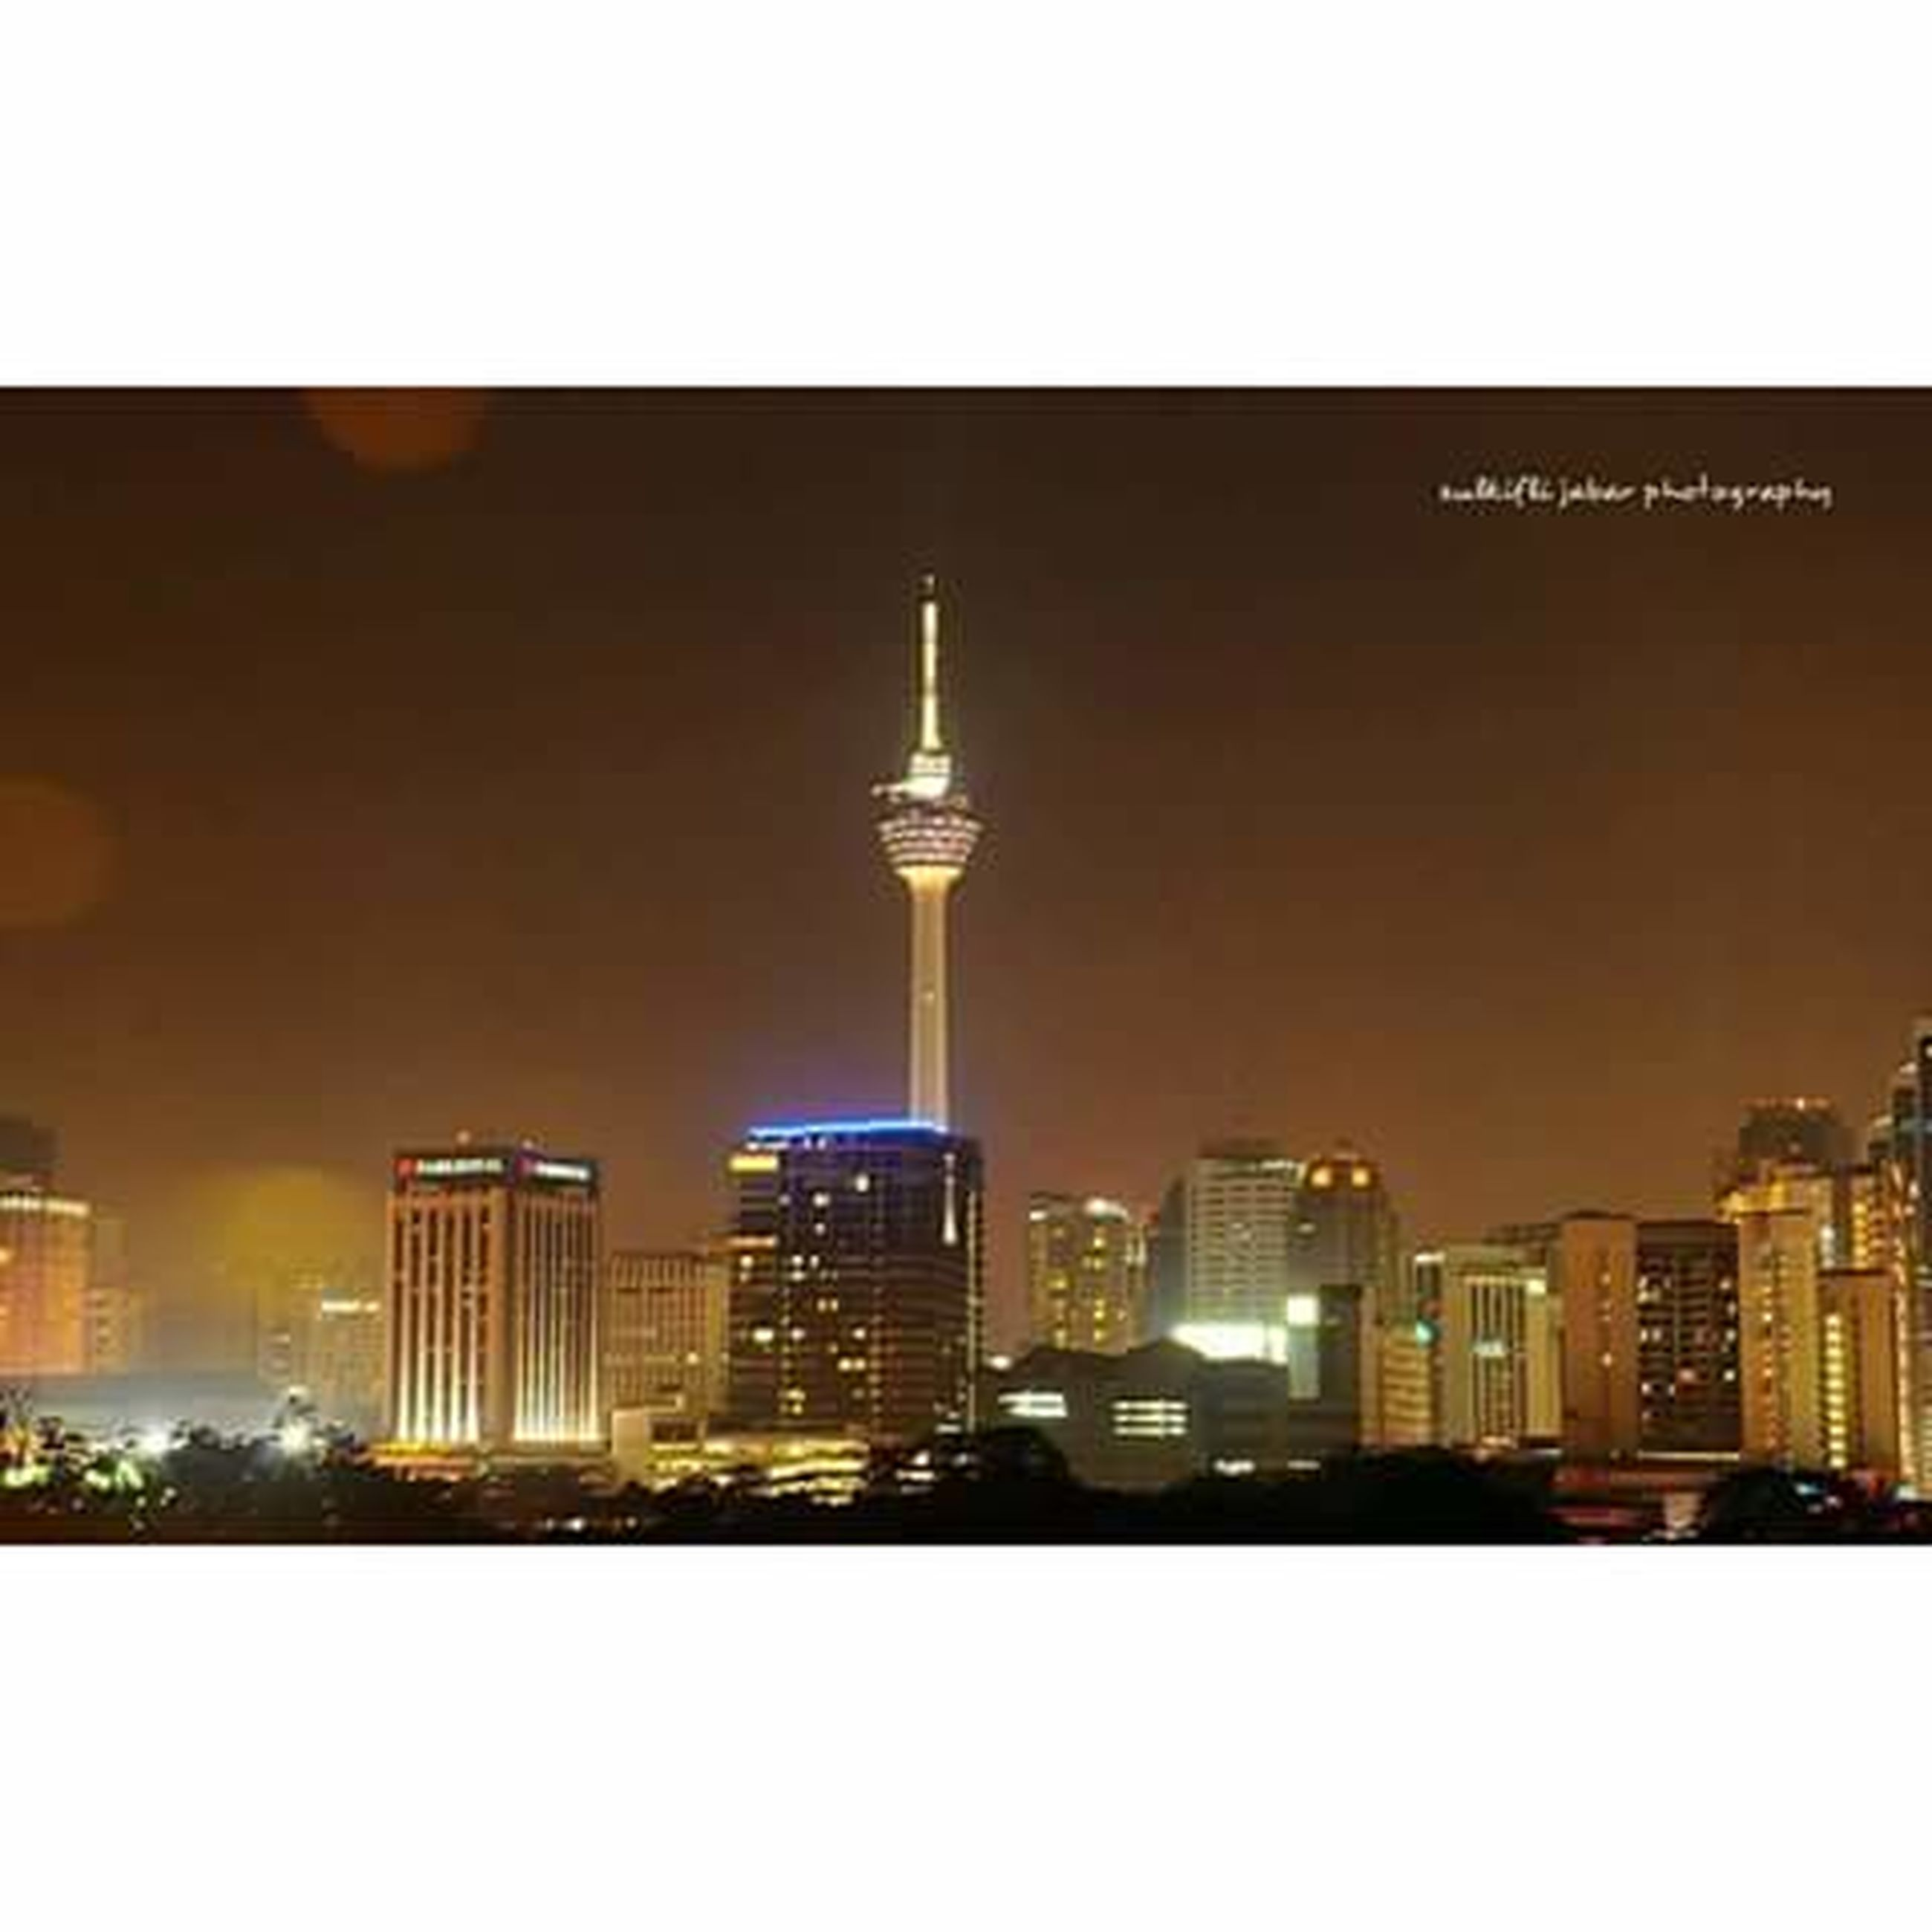 built structure, architecture, city, communications tower, illuminated, building exterior, tower, night, skyscraper, tall - high, cityscape, communication, spire, modern, sky, travel destinations, tall, outdoors, urban skyline, city life, television tower, office building, culture, no people, development, building story, skyline